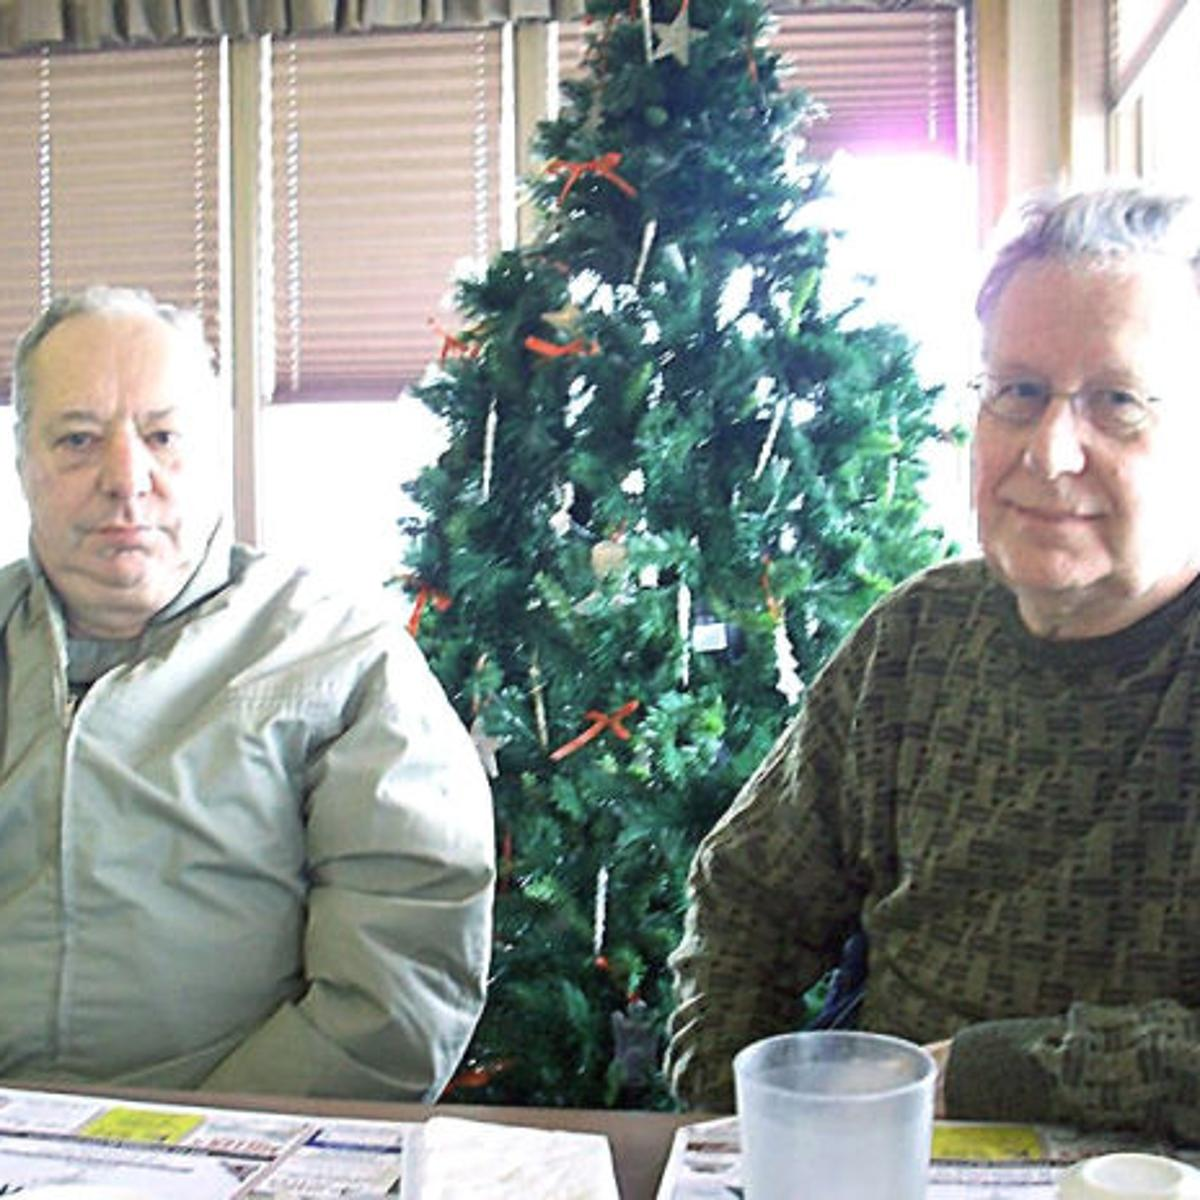 Sscred Heart Lewisburg Pa Christmas Eve Times 2020 Thrilling days of yesteryear   News   dailyitem.com